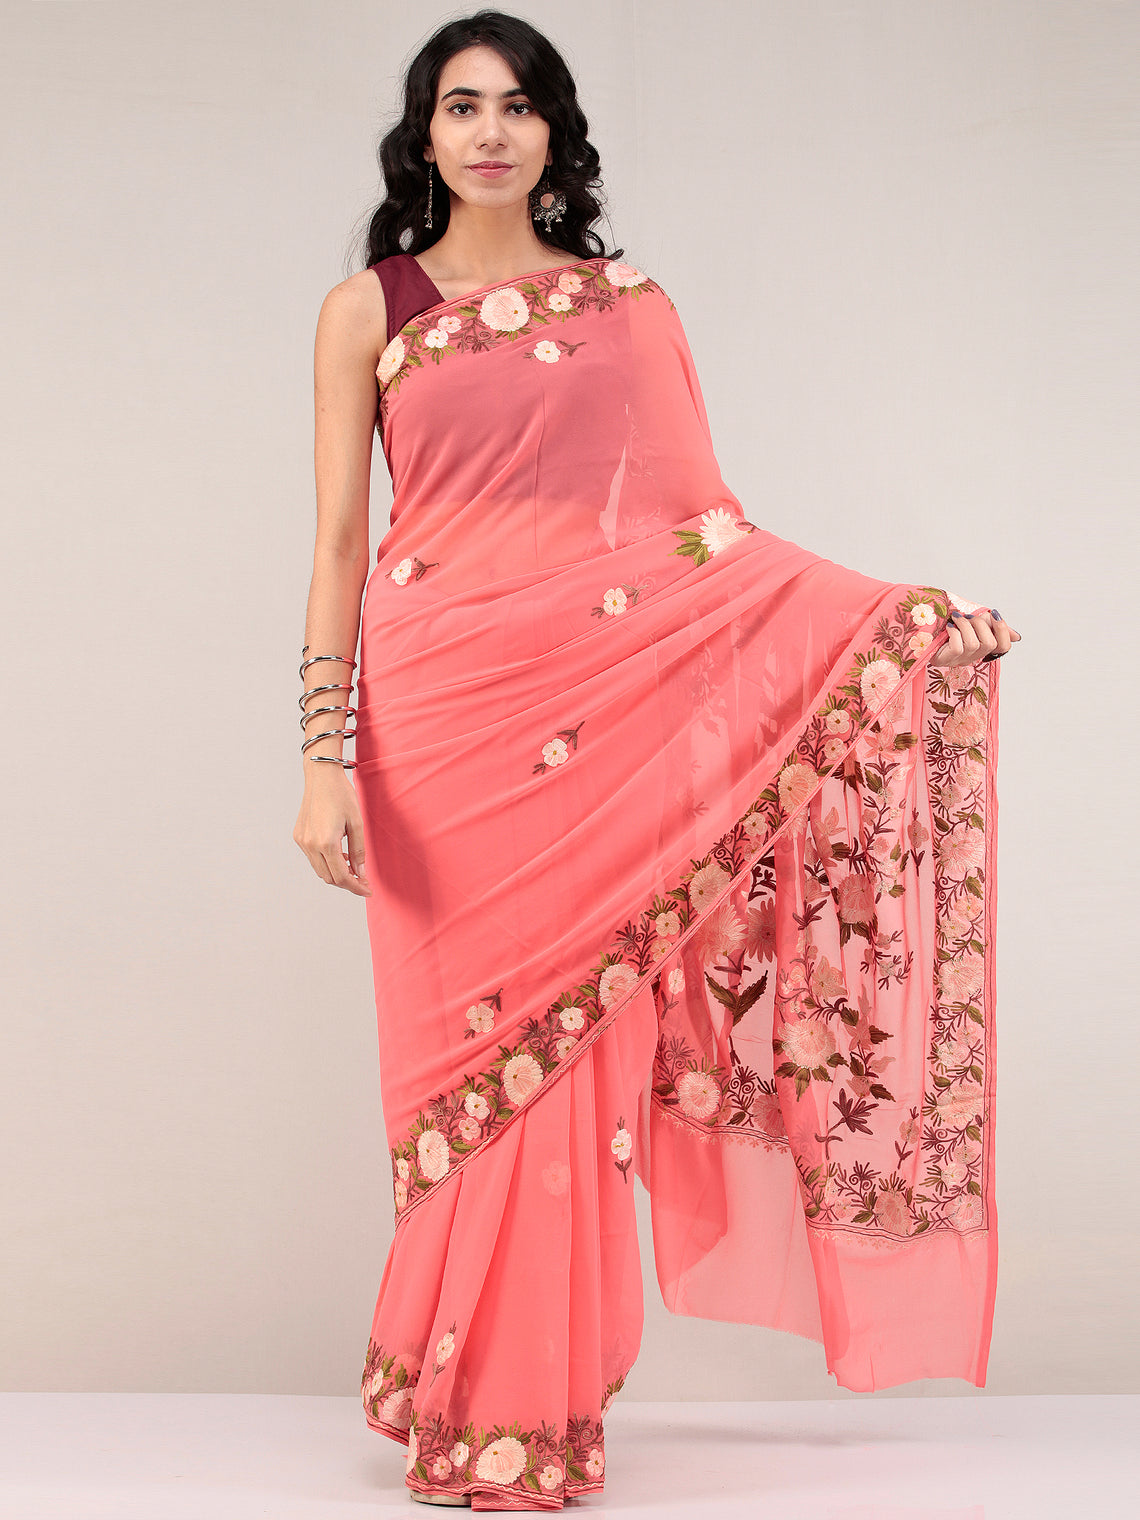 Peach Pink Aari Embroidered Georgette Saree From Kashmir - S031704670